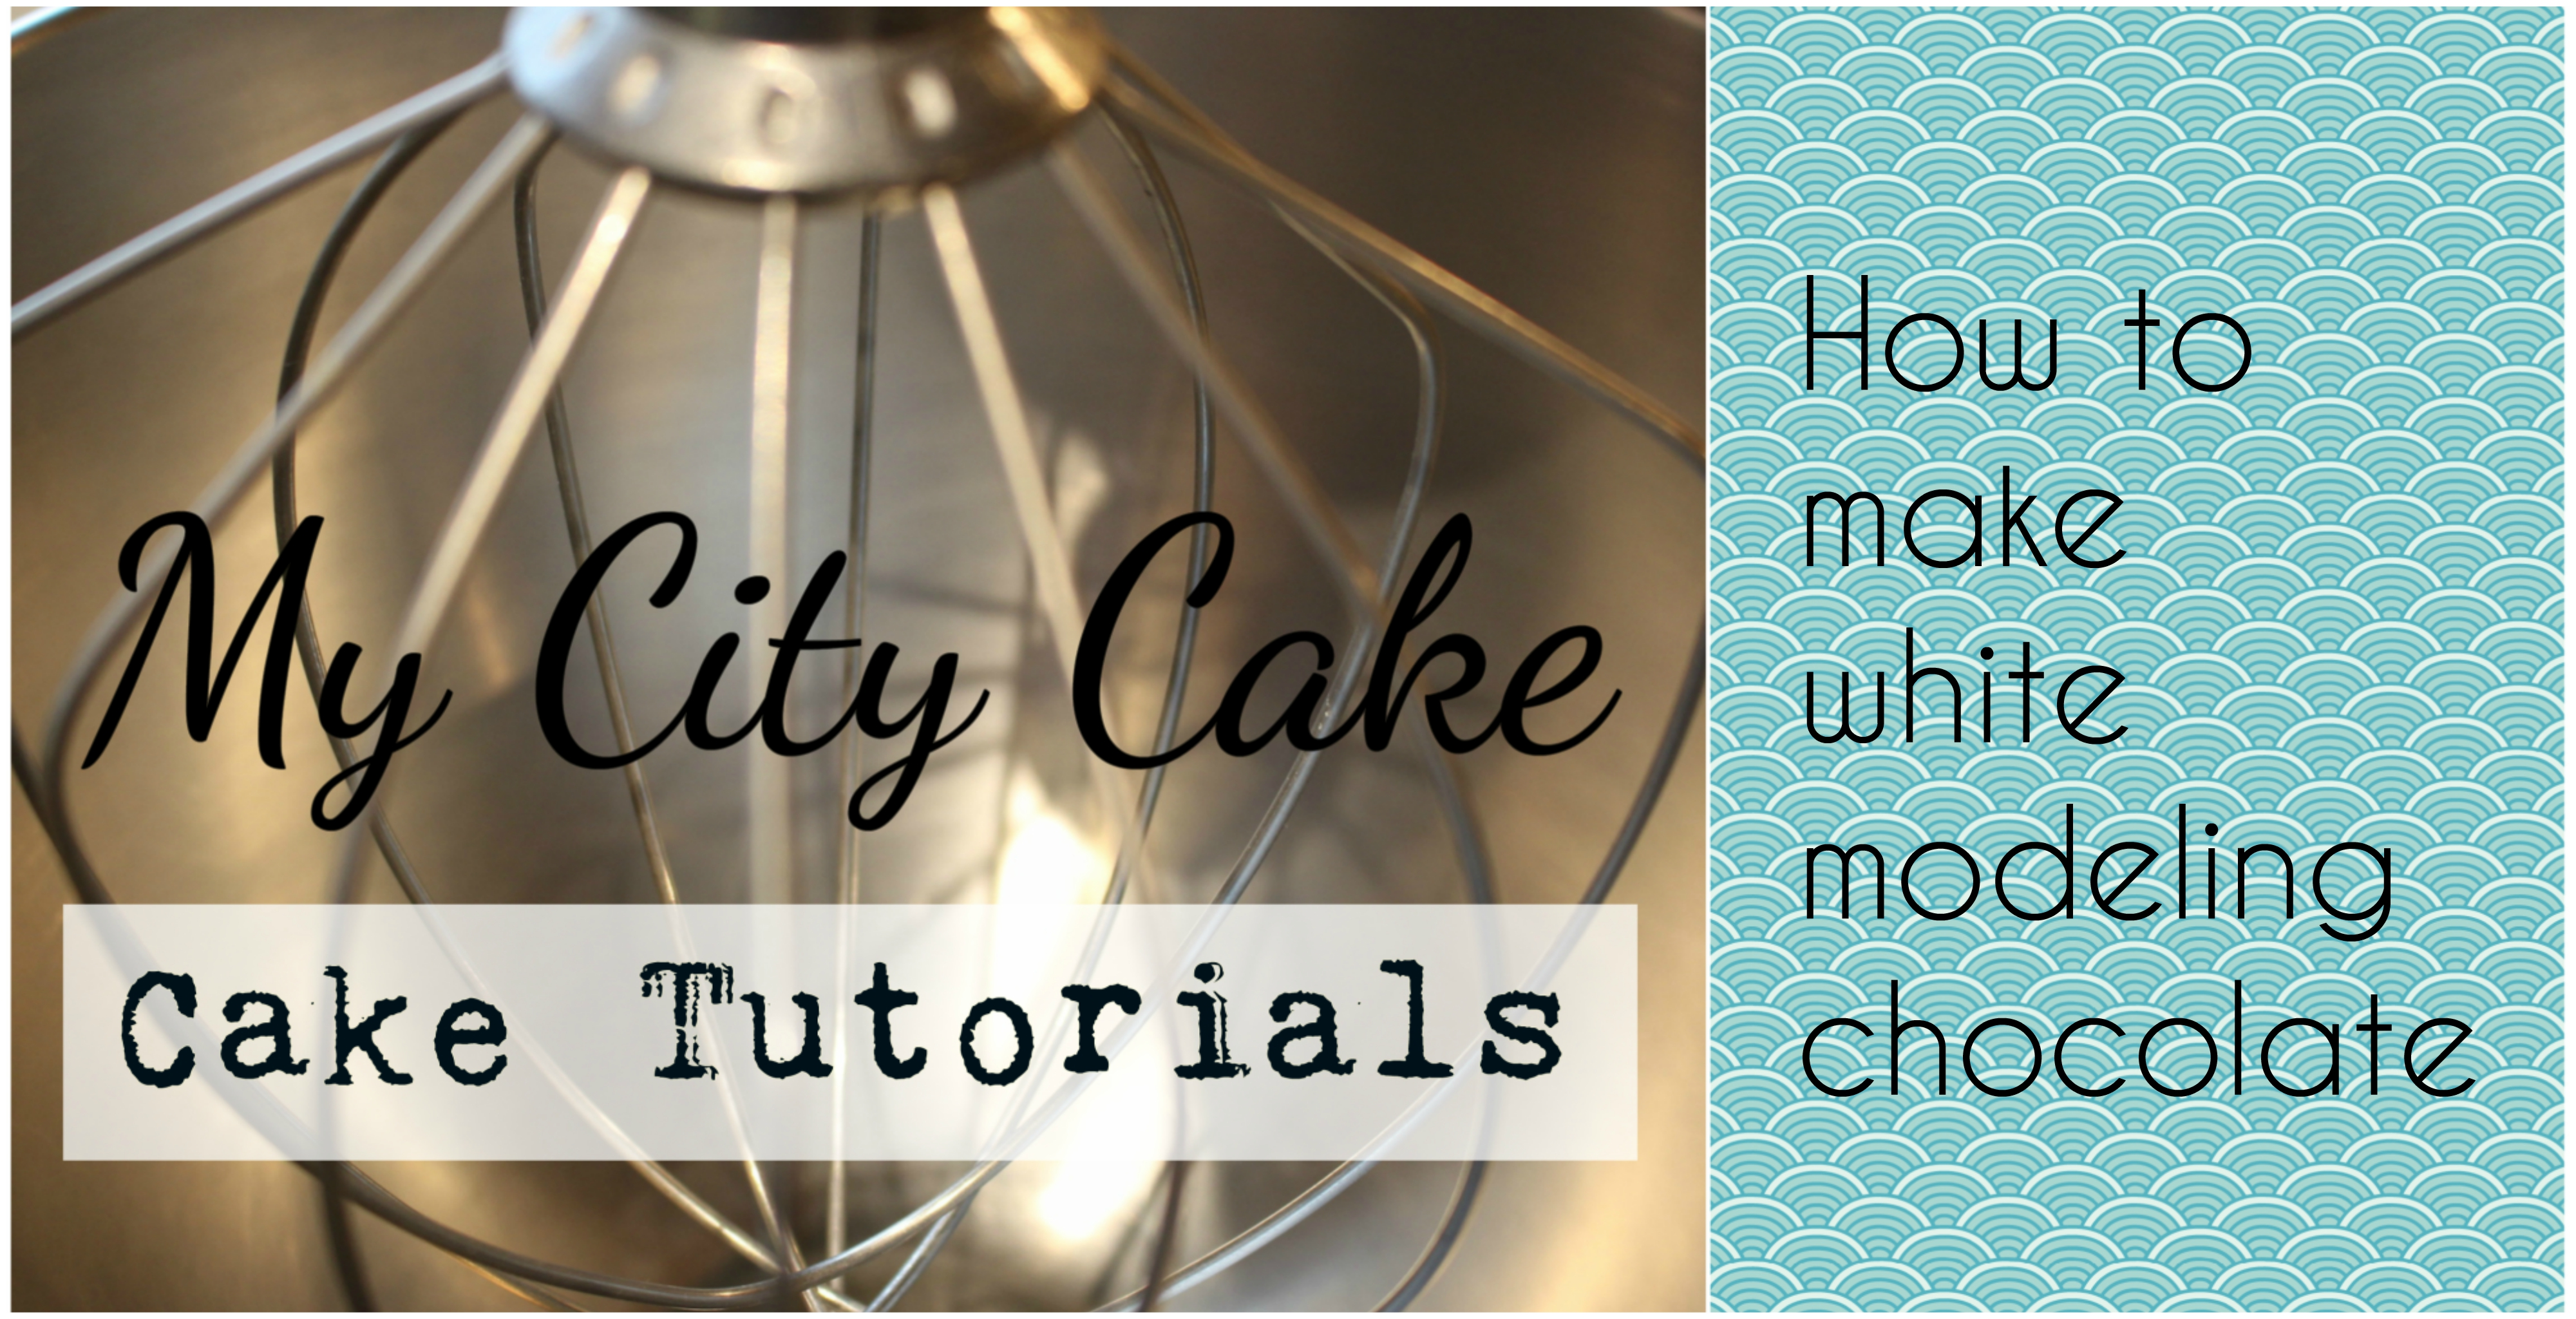 how-to-make-modeling-chocolate-thumbnail - Gâteau de Ville